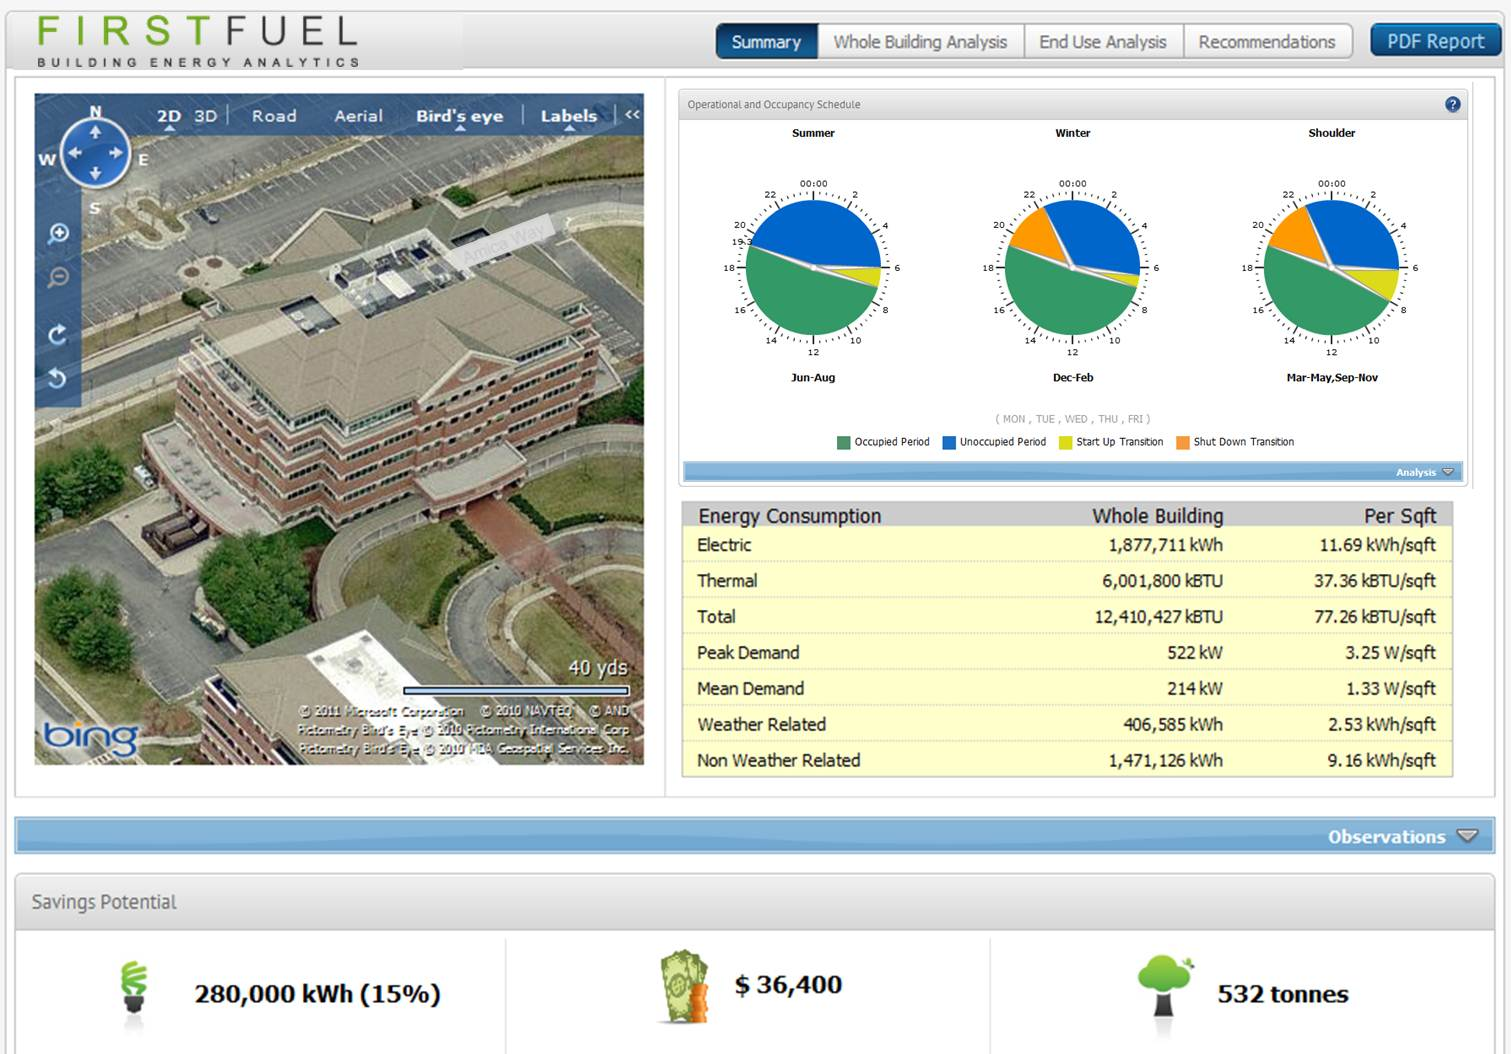 Big data meets green buildings: FirstFuel analyzes utility and weather data to generate a profile of energy use and efficiency recommendations without having to install equipment or perform an energy audit.